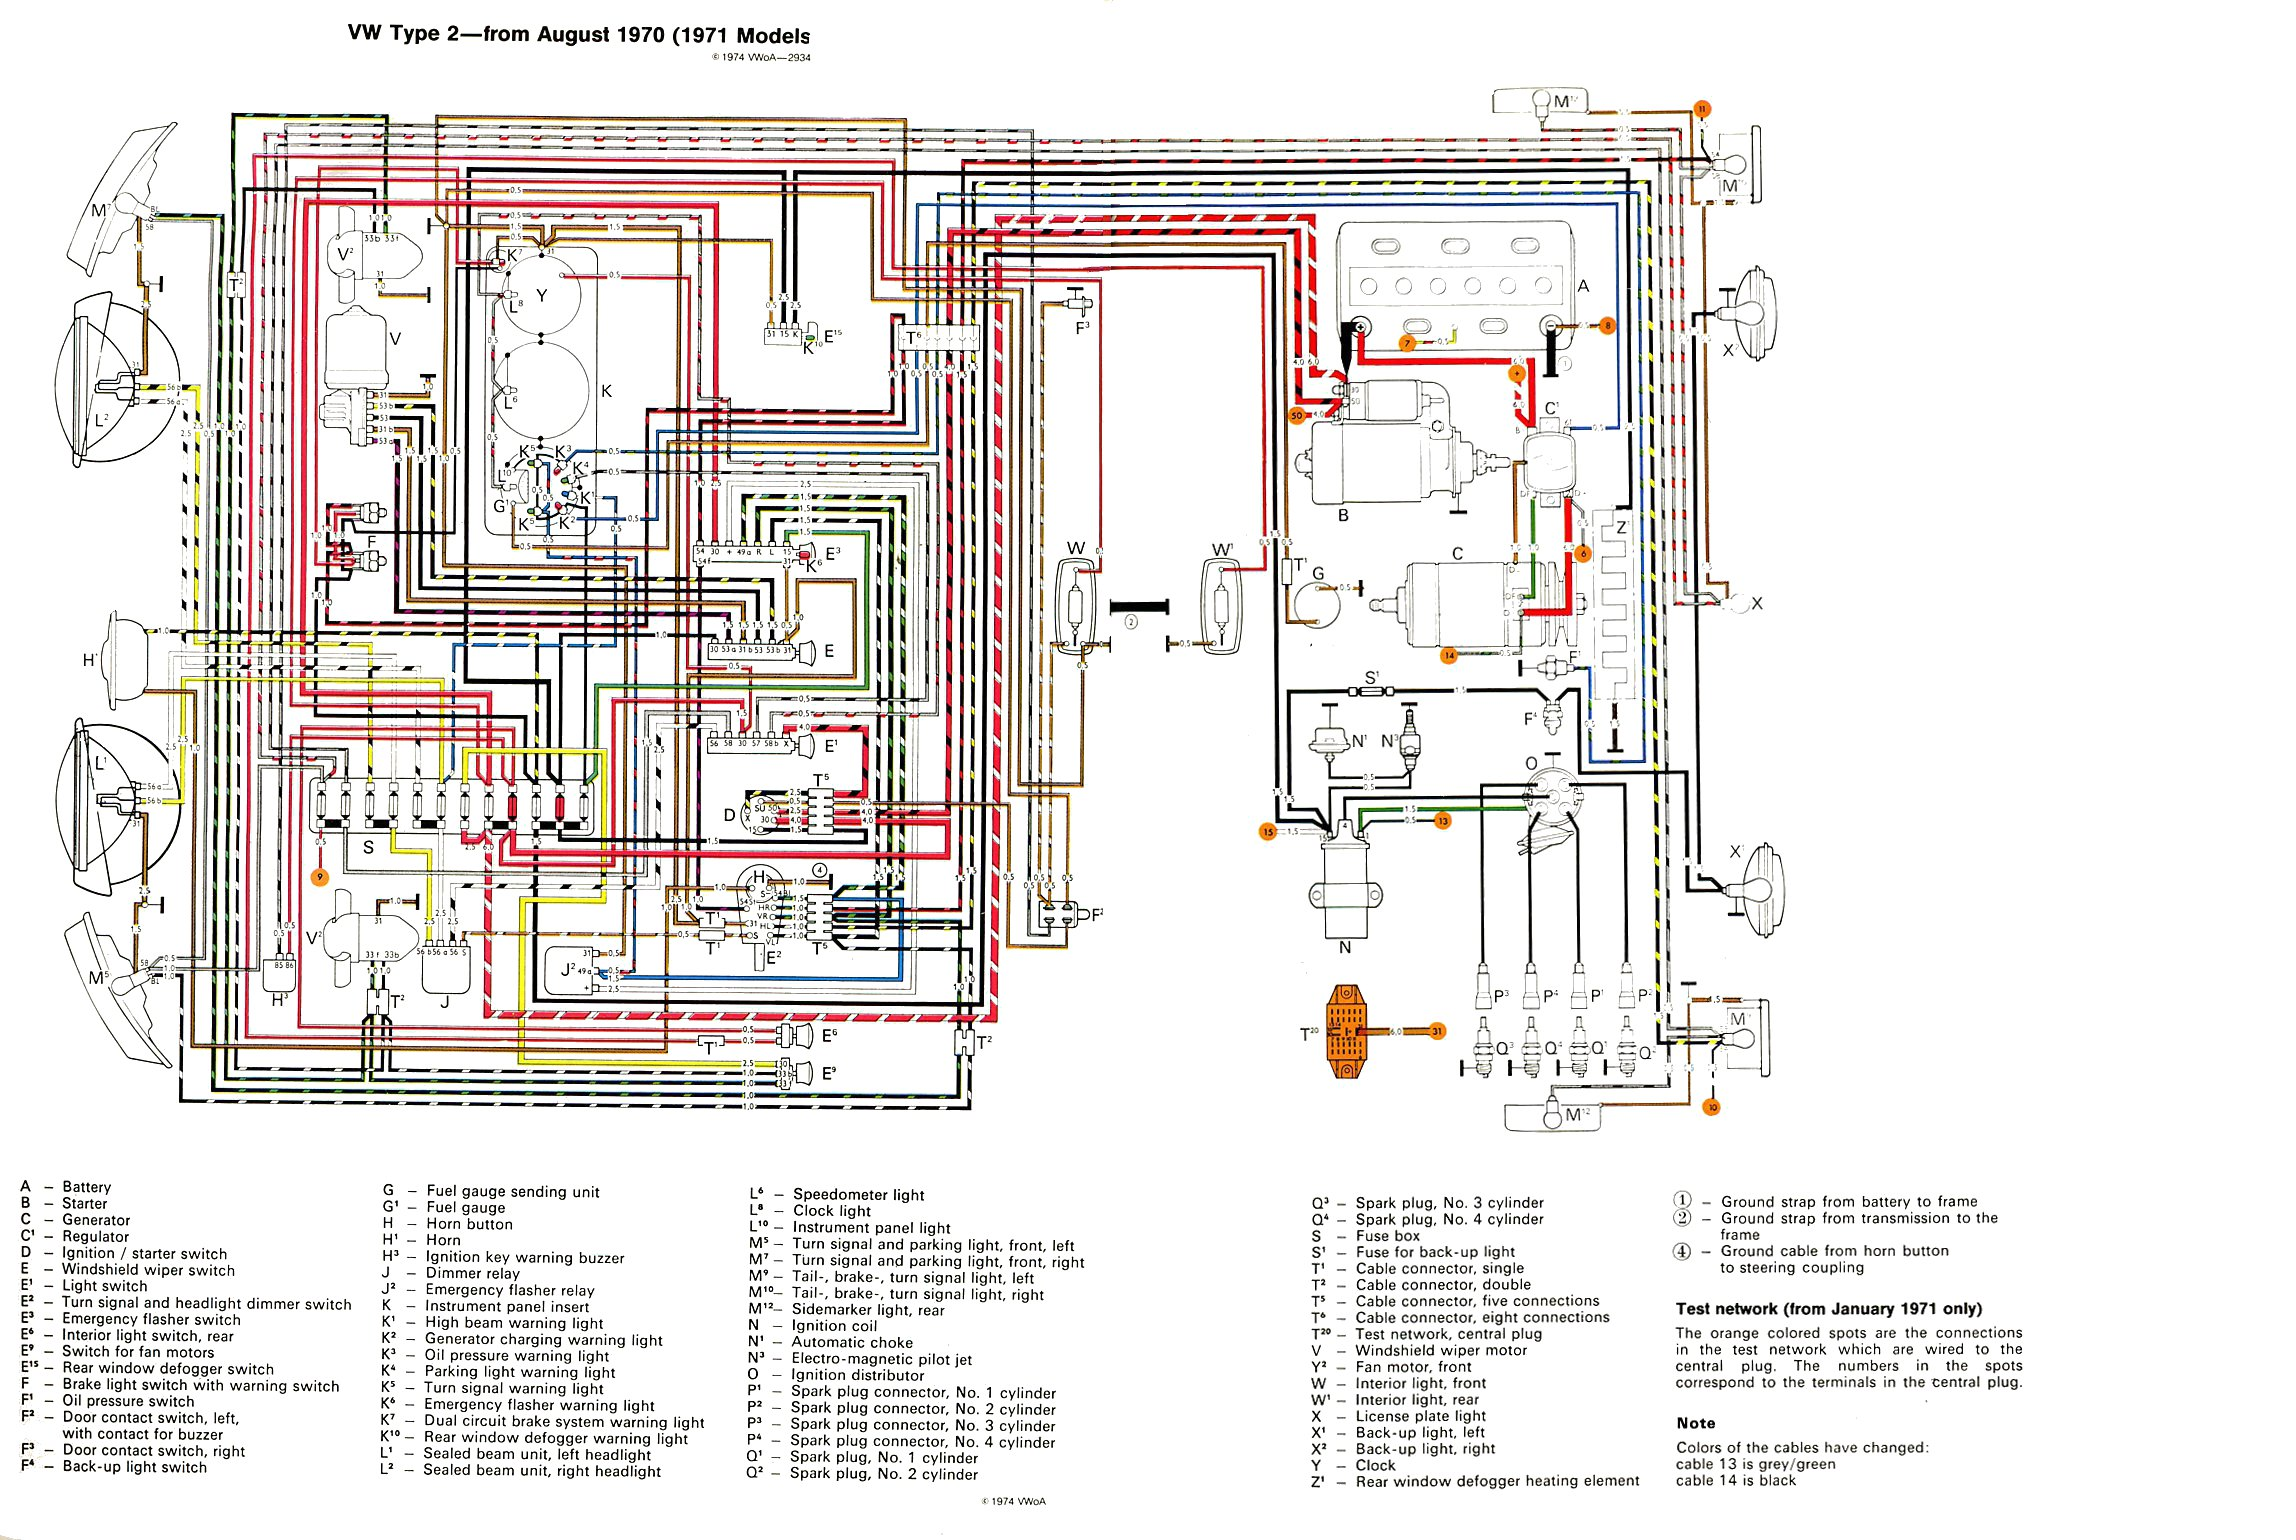 baybus_71 71 vw bus wiring diagram 1970 vw bus fuse box diagram \u2022 wiring Wiring Harness Diagram at crackthecode.co